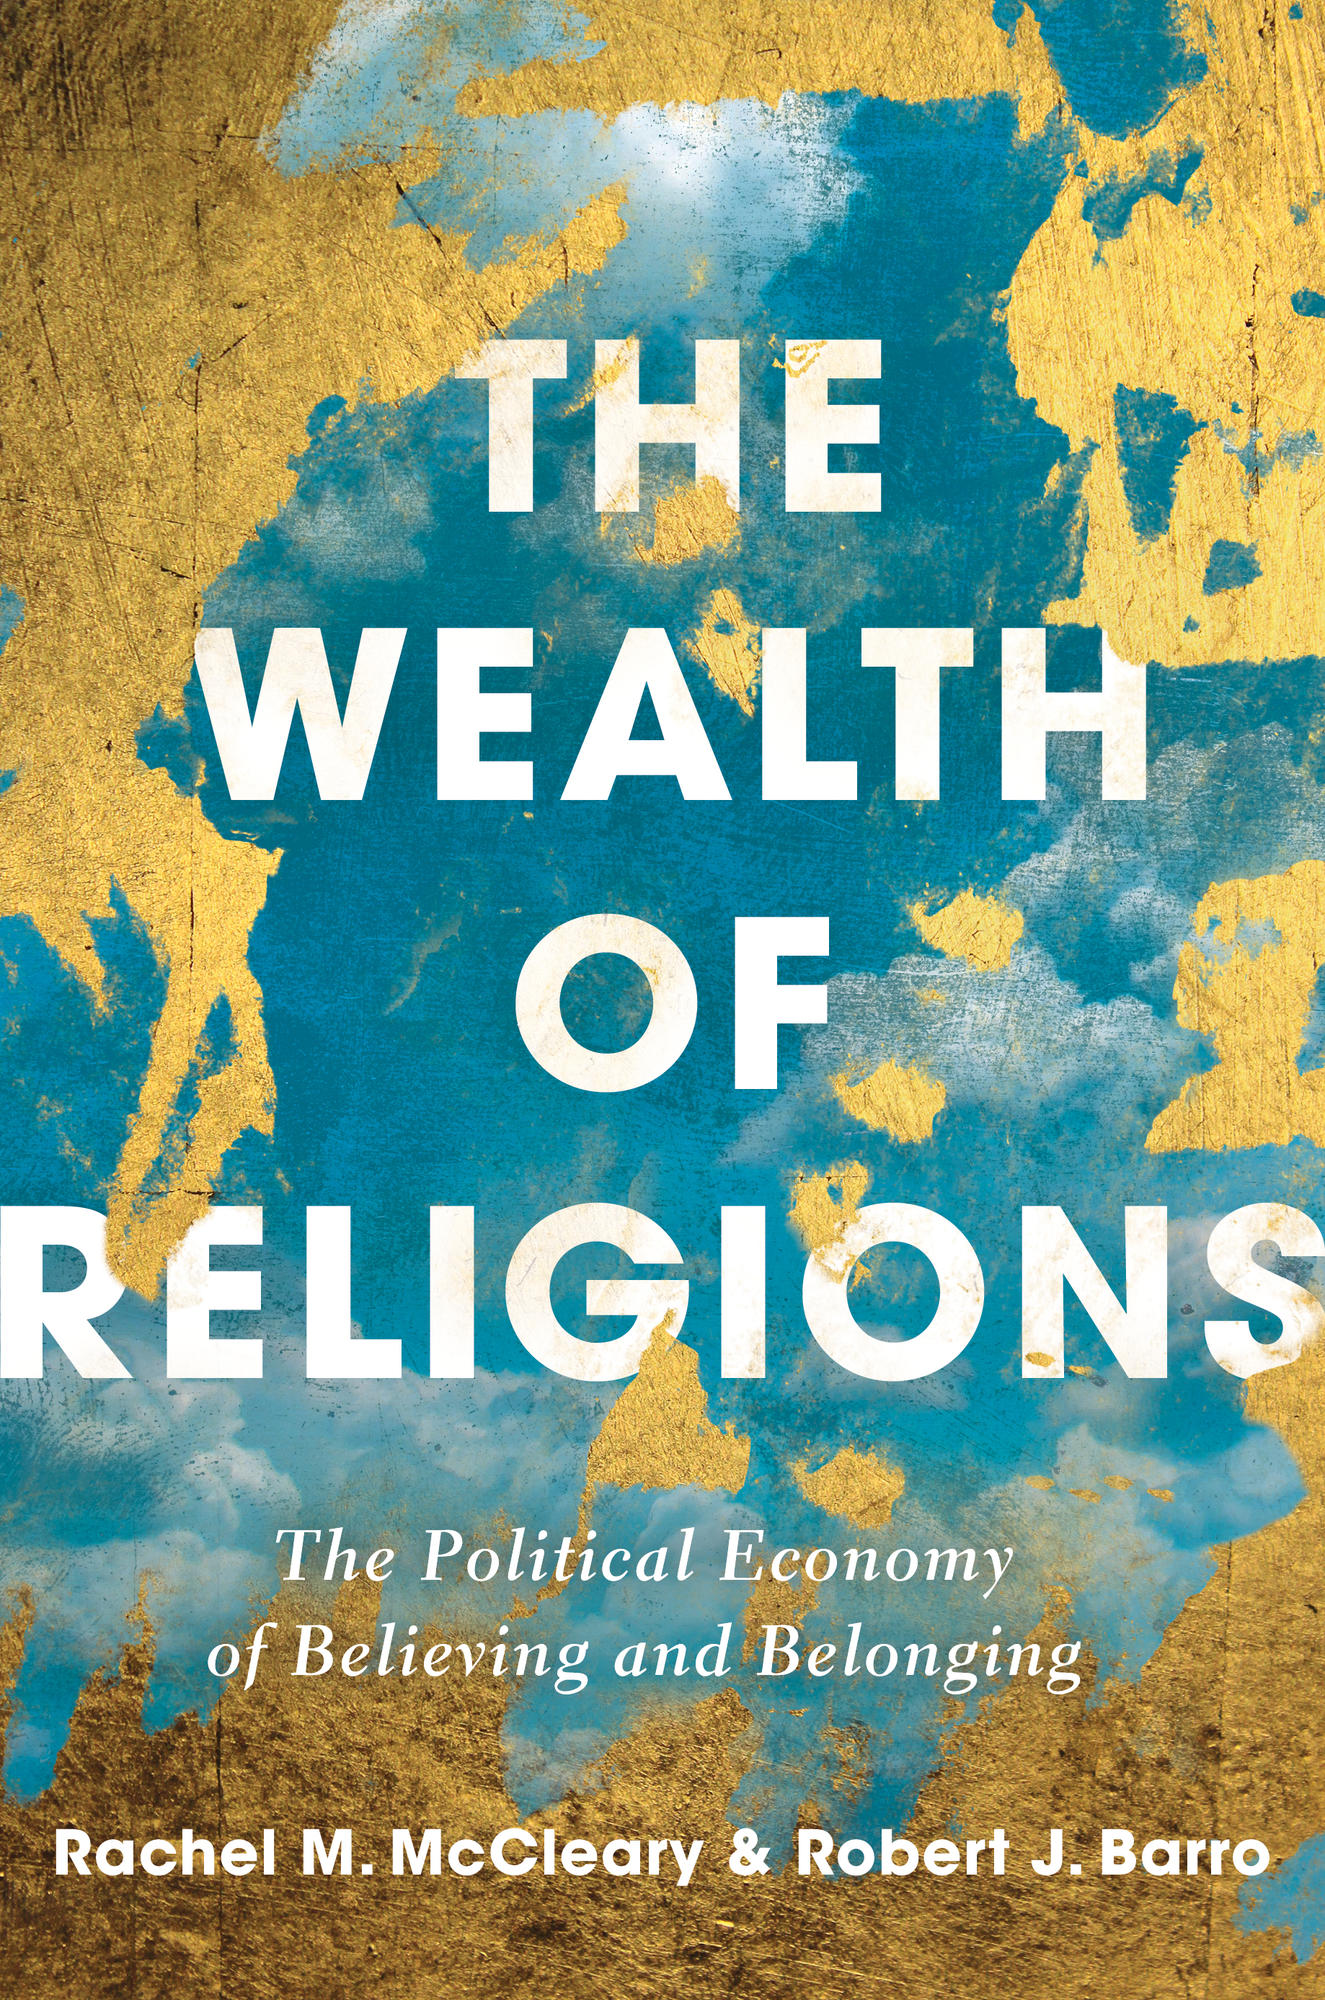 The Wealth of Religions: The Political Economy of Believing and Belonging